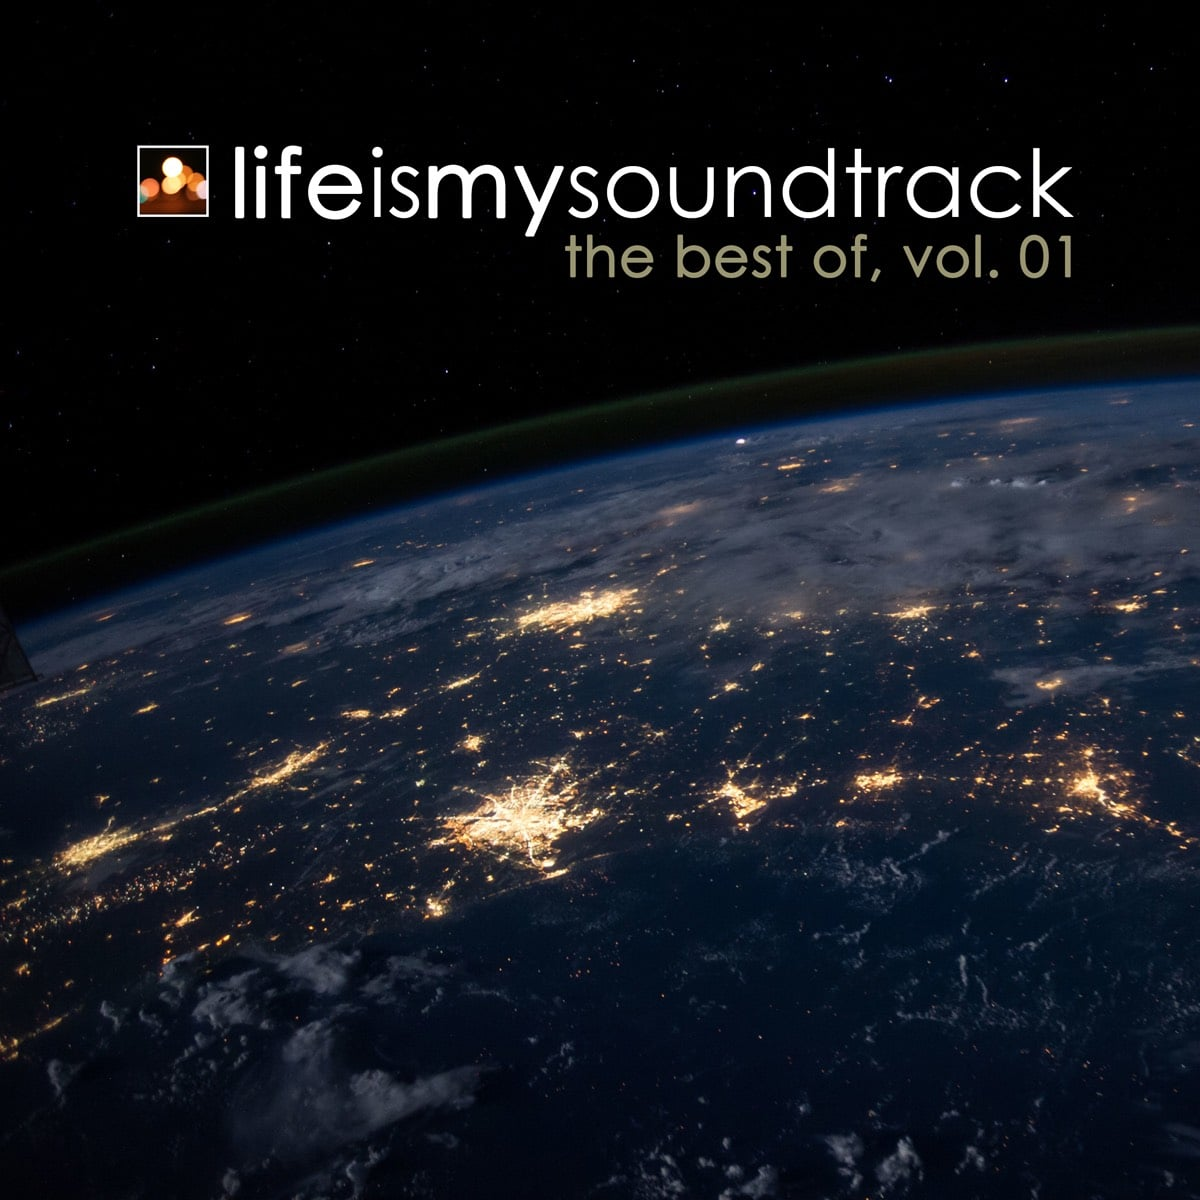 "The album The Best Of, Vol. 01 by Life Is My Soundtrack - Travel from the depths of the sea to the farthest reaches of space with this ""best of"" album, featuring songs from ""Into The Deep Blue Sea"", ""A Silver Cloud"", and ""The Stars In The Sky"""